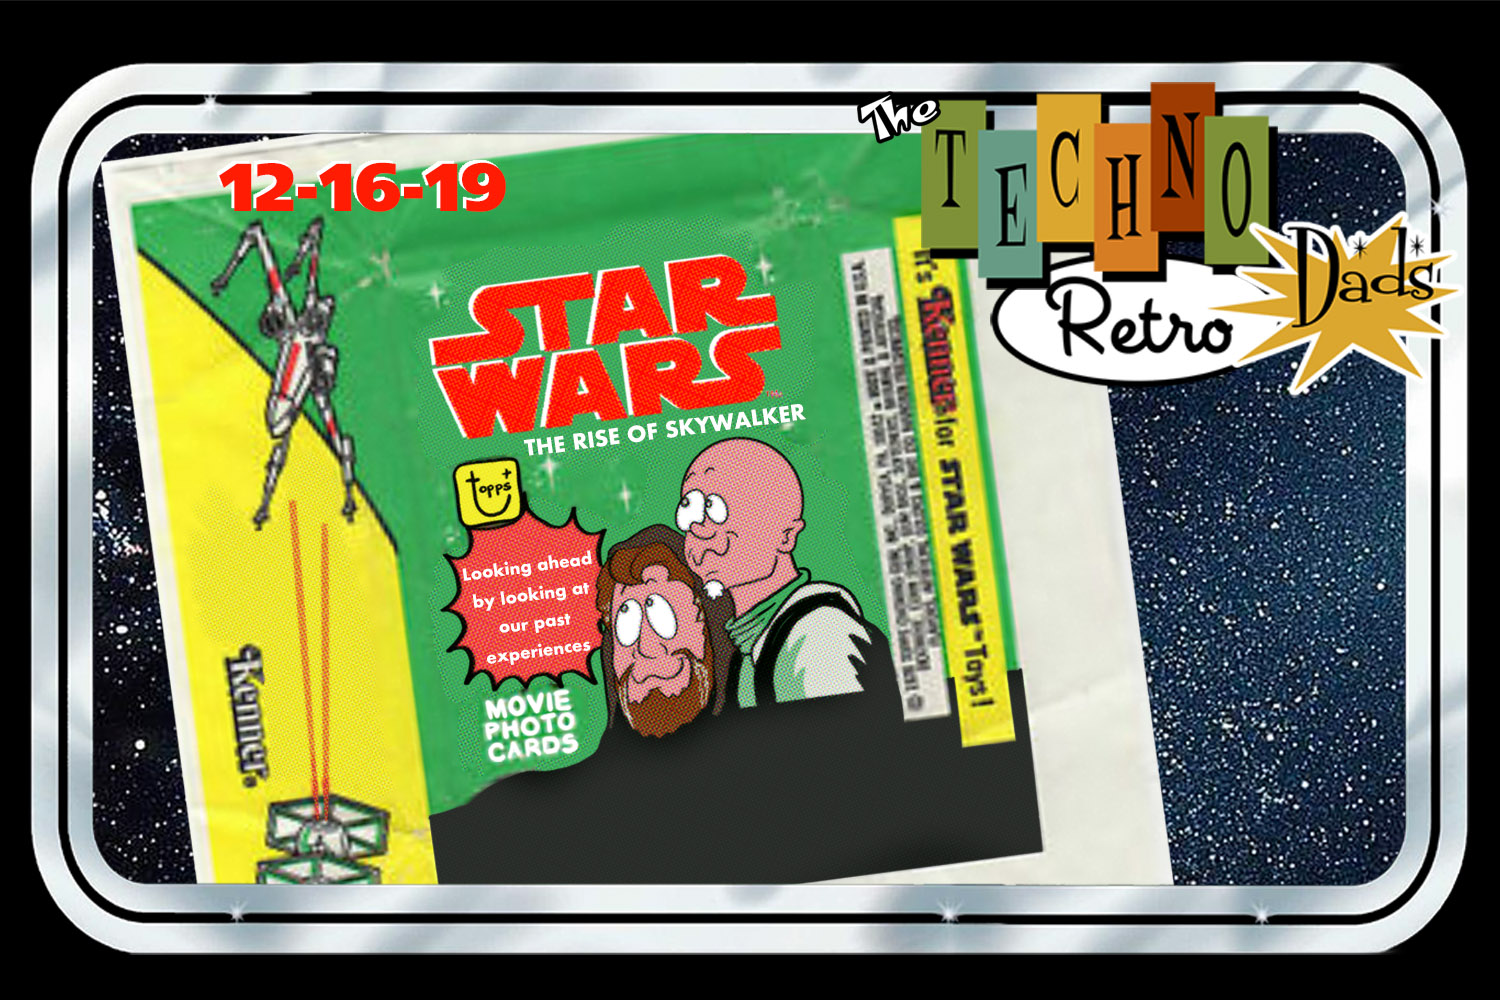 TechnoRetro Dads revisit their Star Wars experiences